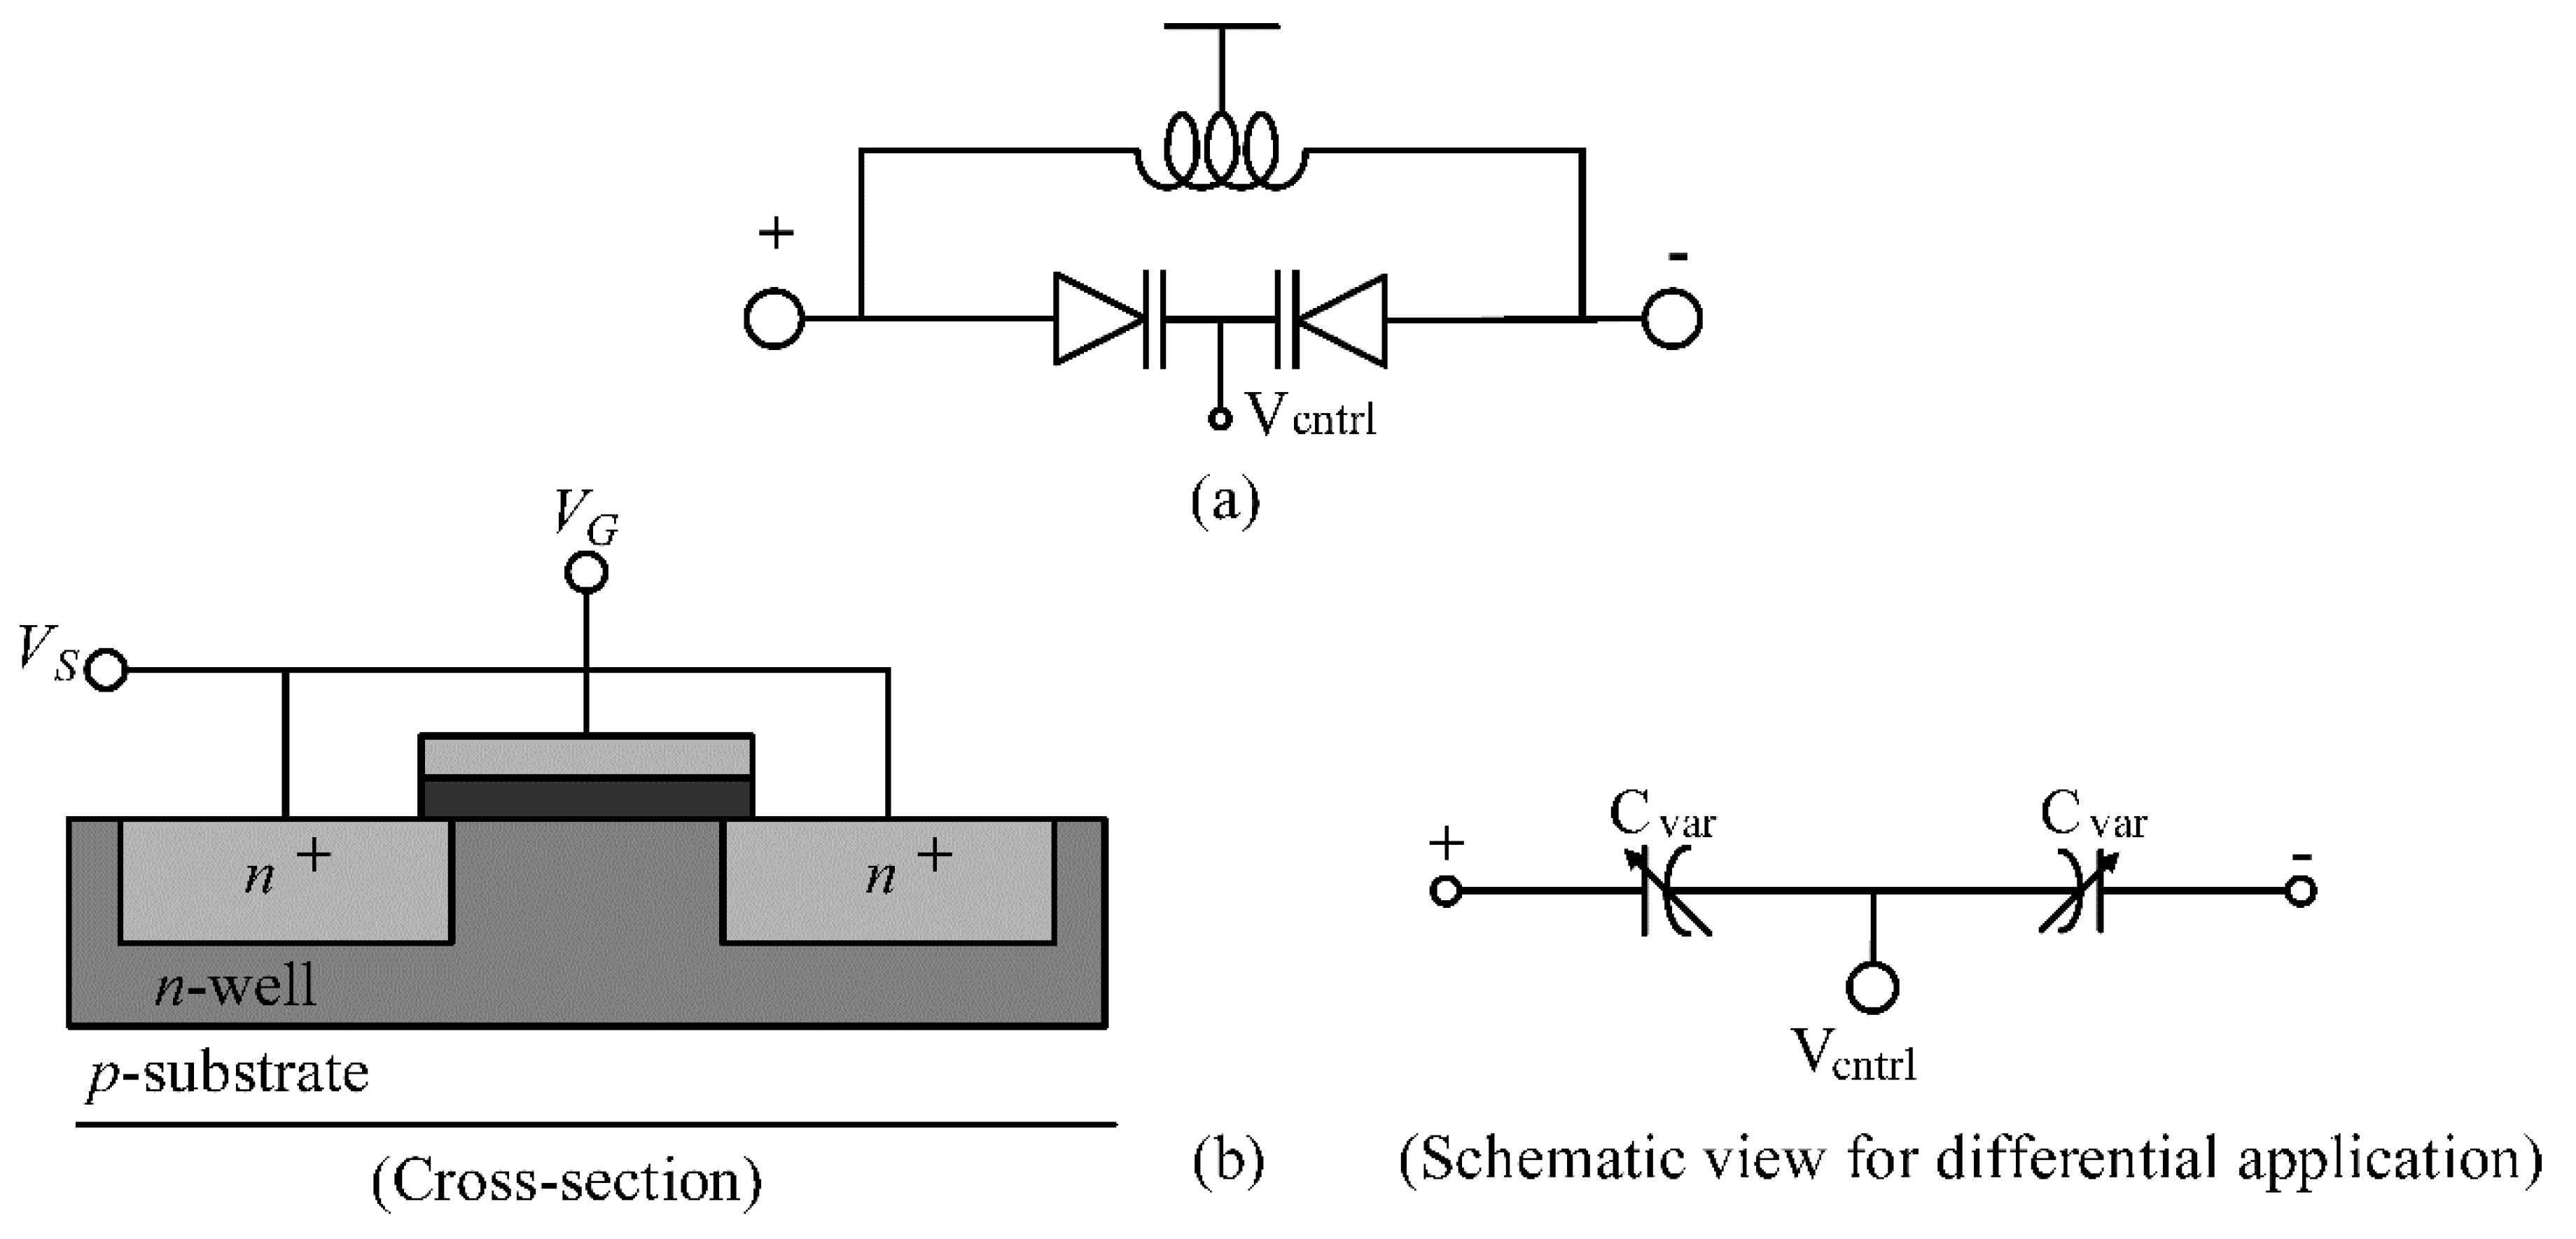 Voltage Controlled Oscillator Schematic Harmonic Vco Circuit Diagram Using Lm358 Narrow Band Colpitts Design Research Electronics Free Full Text A Bandwidth Enhanced Differential Lc